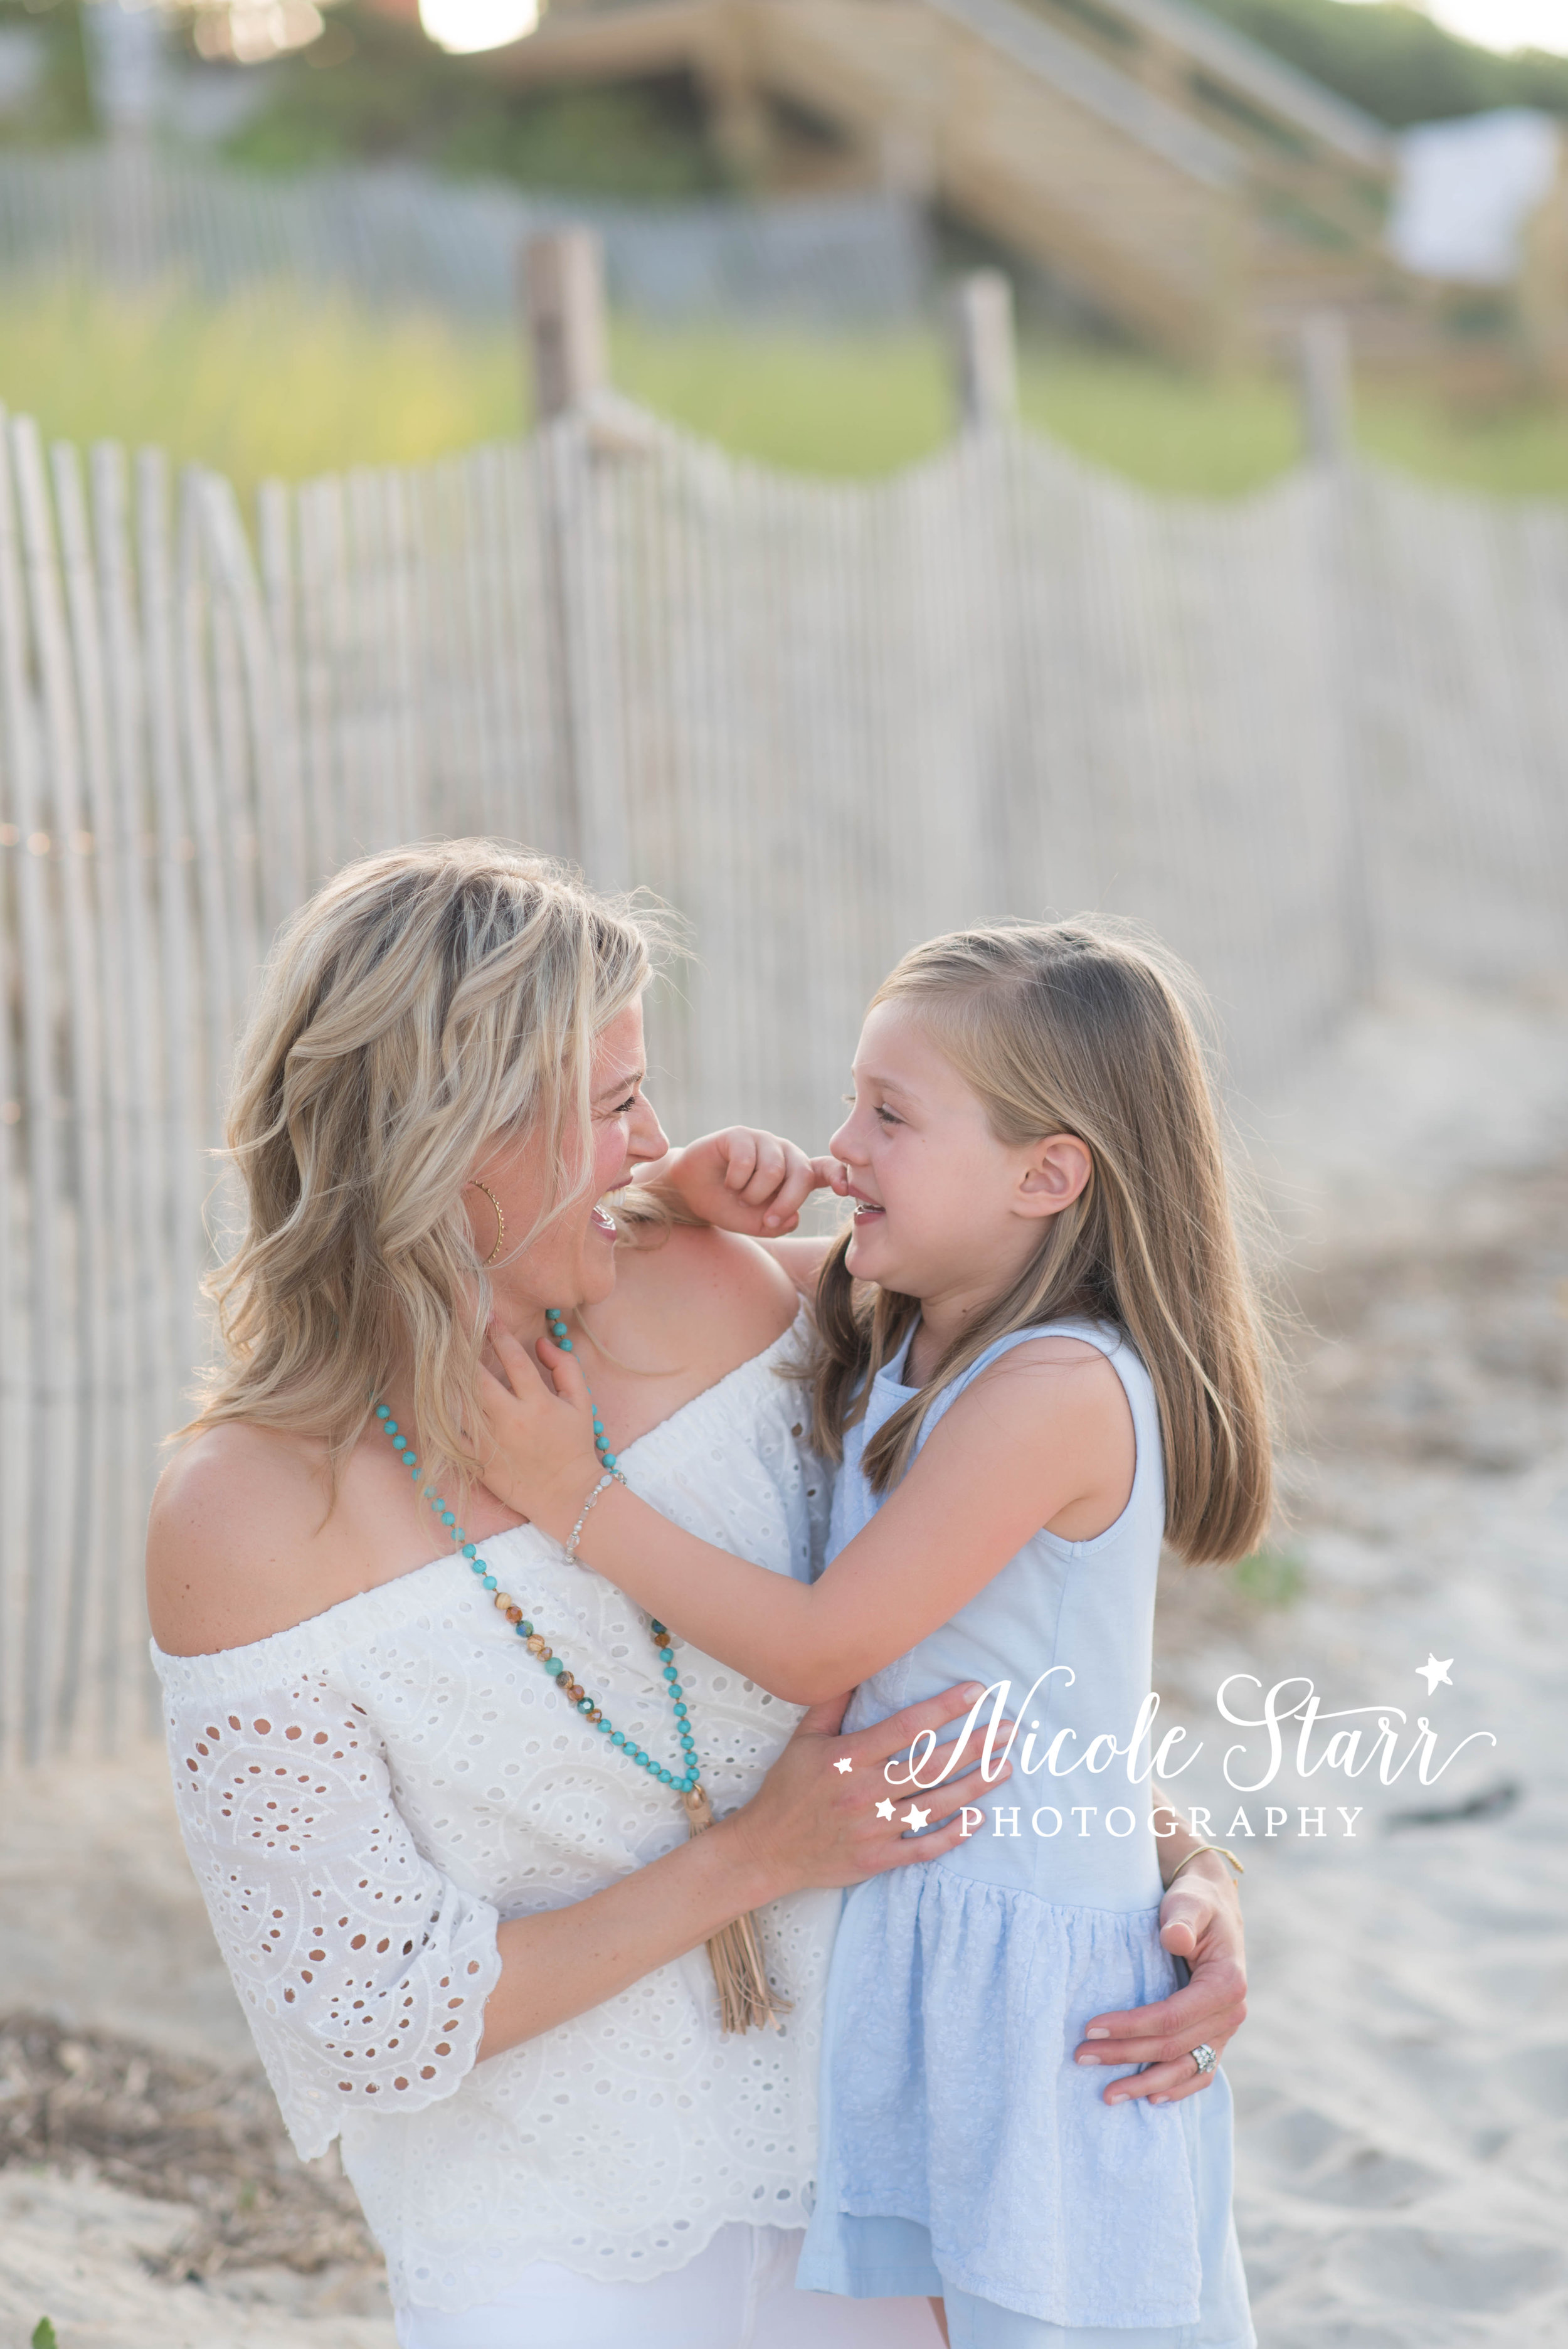 Nicole Starr Photography | Cape Cod Family Photographer | Boston Family Photographer | Family Photographer